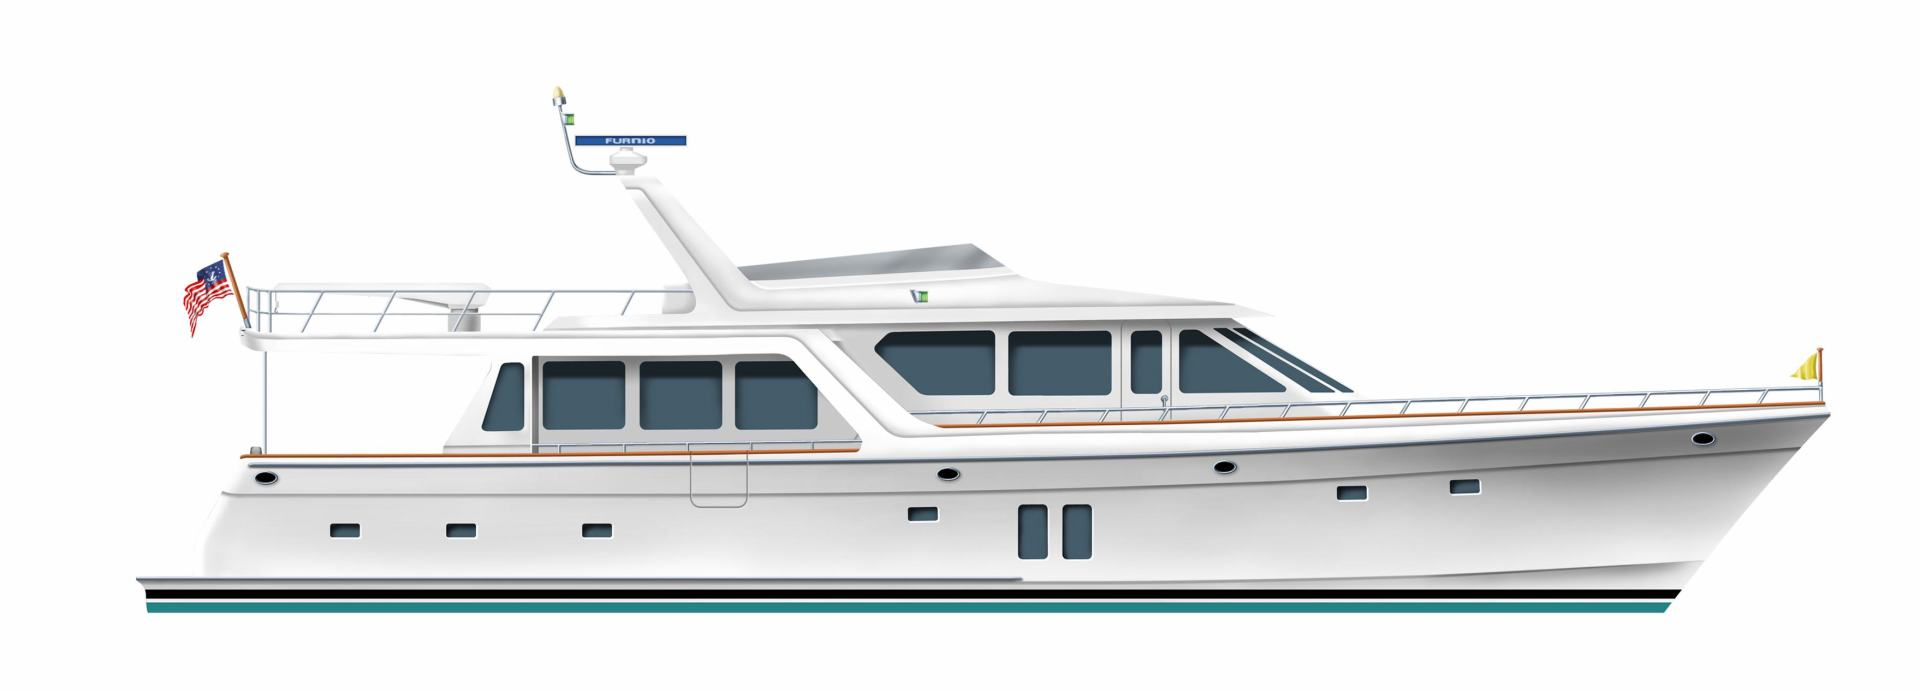 2020 Offshore Yachts 76' 76/80 Motoryacht